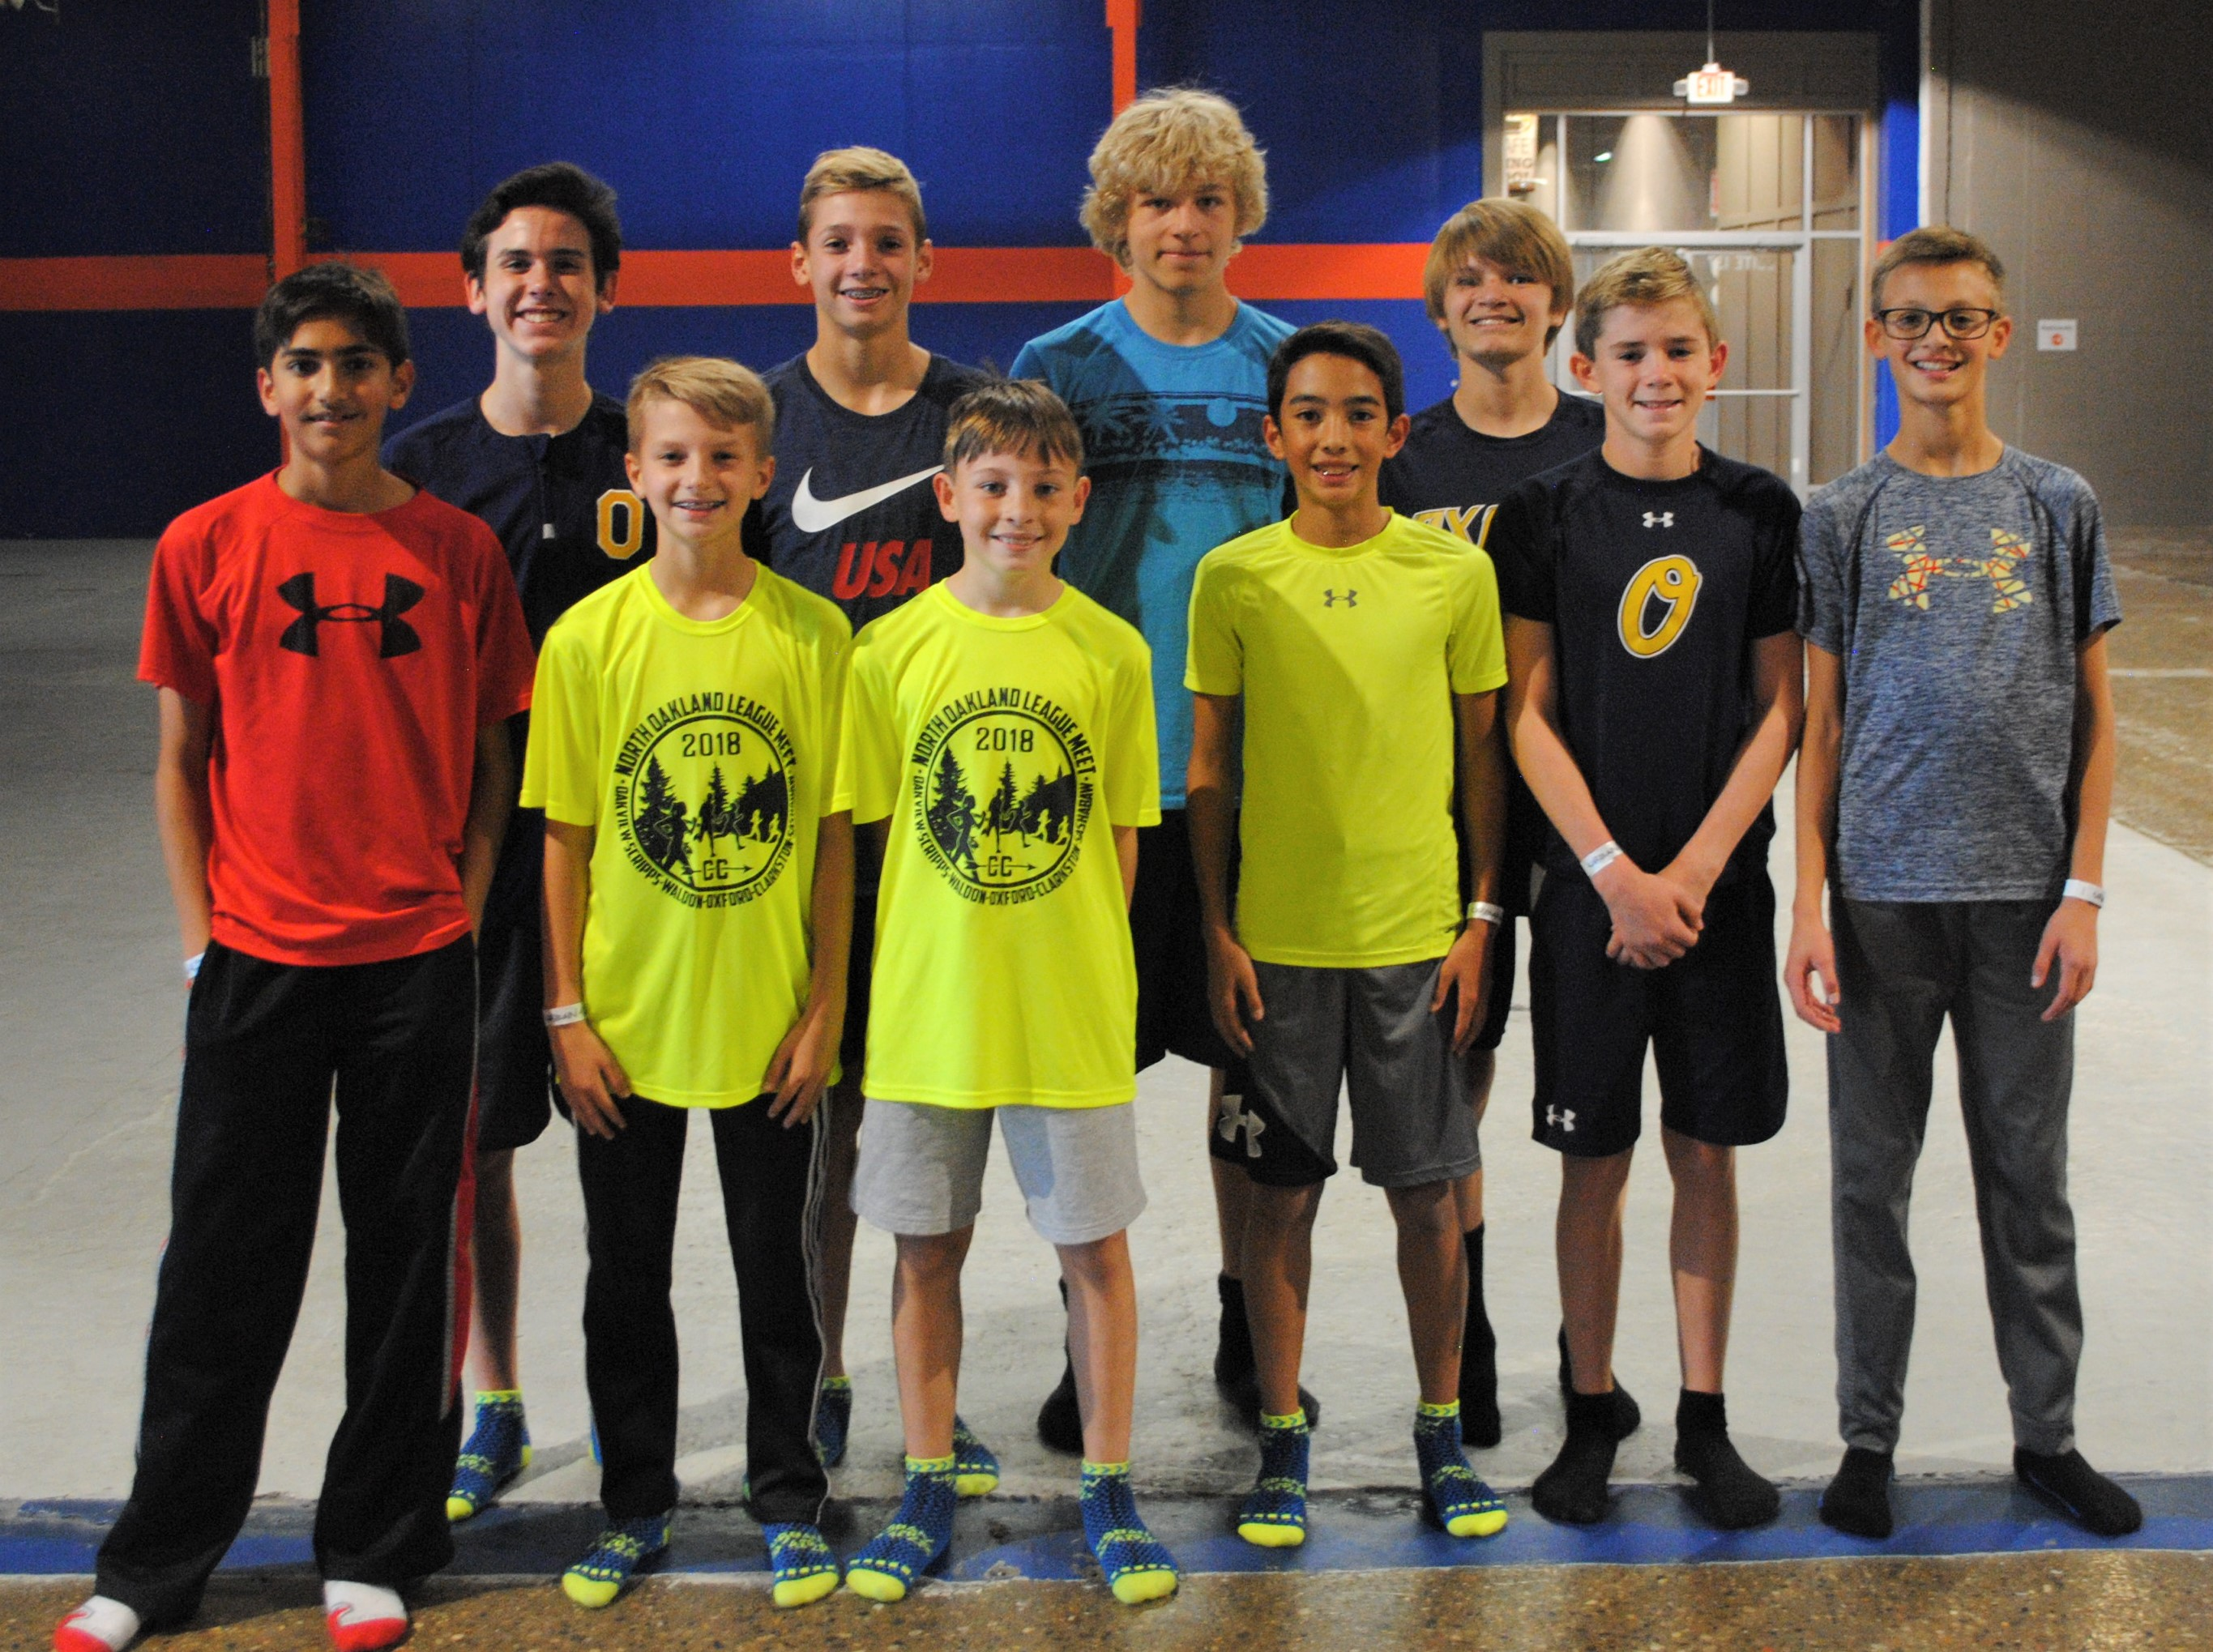 Front row (from left): Abdullah Ali, Jake Bunting, Jack Dysarz, Kyle DiMalanta, Jack Bauman and Aaron Schiller. Back row (from left): Xavier Clark, Dylan Stone, Jason Lavender and Hunter Burbas. Photo by Shelby Tankersley.